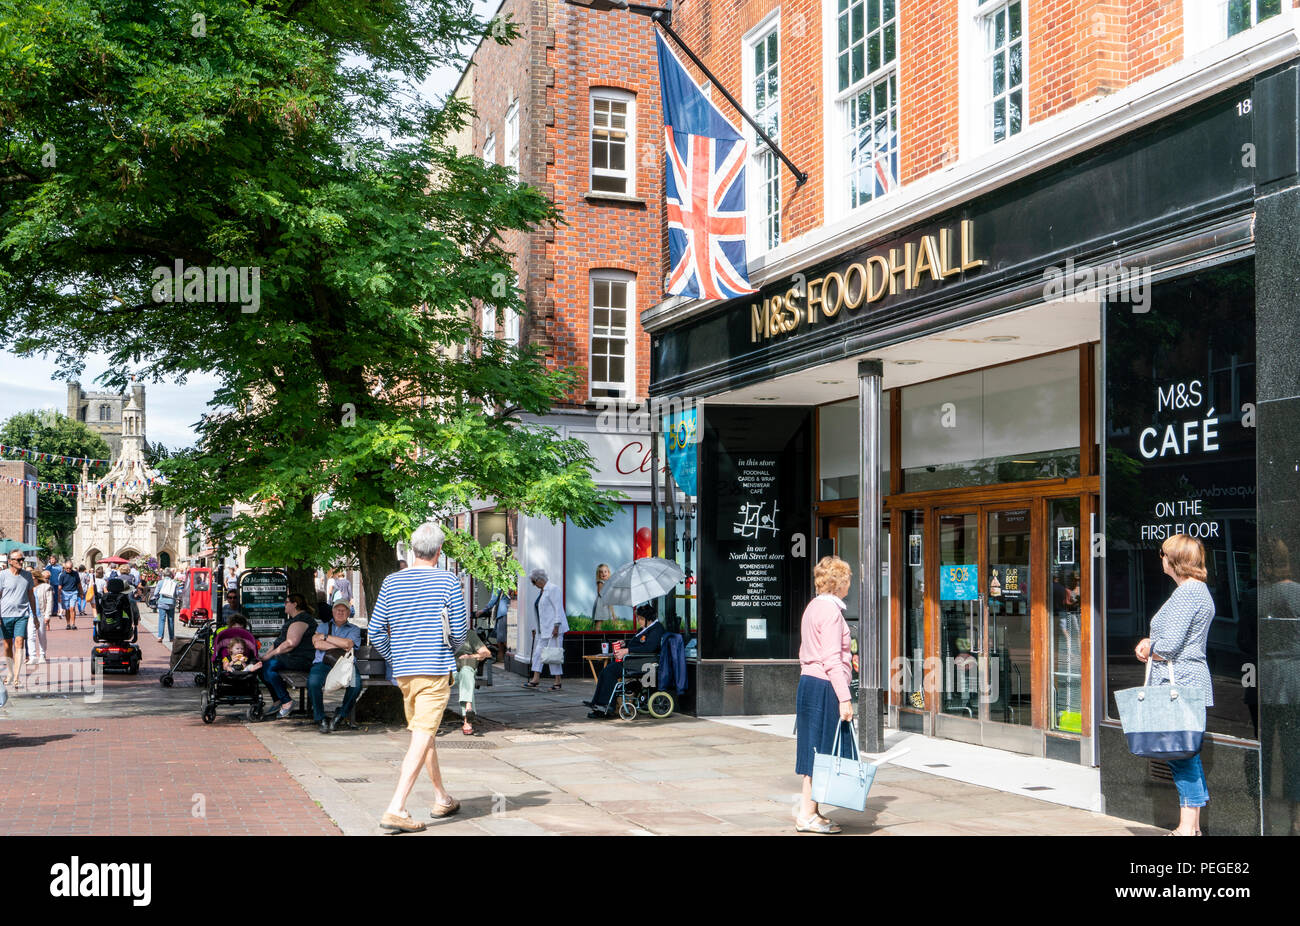 Marks & Spencer Food Hall, mens' fashion store and café in East Street, Chichester, West Sussex, a classic British high street business. - Stock Image